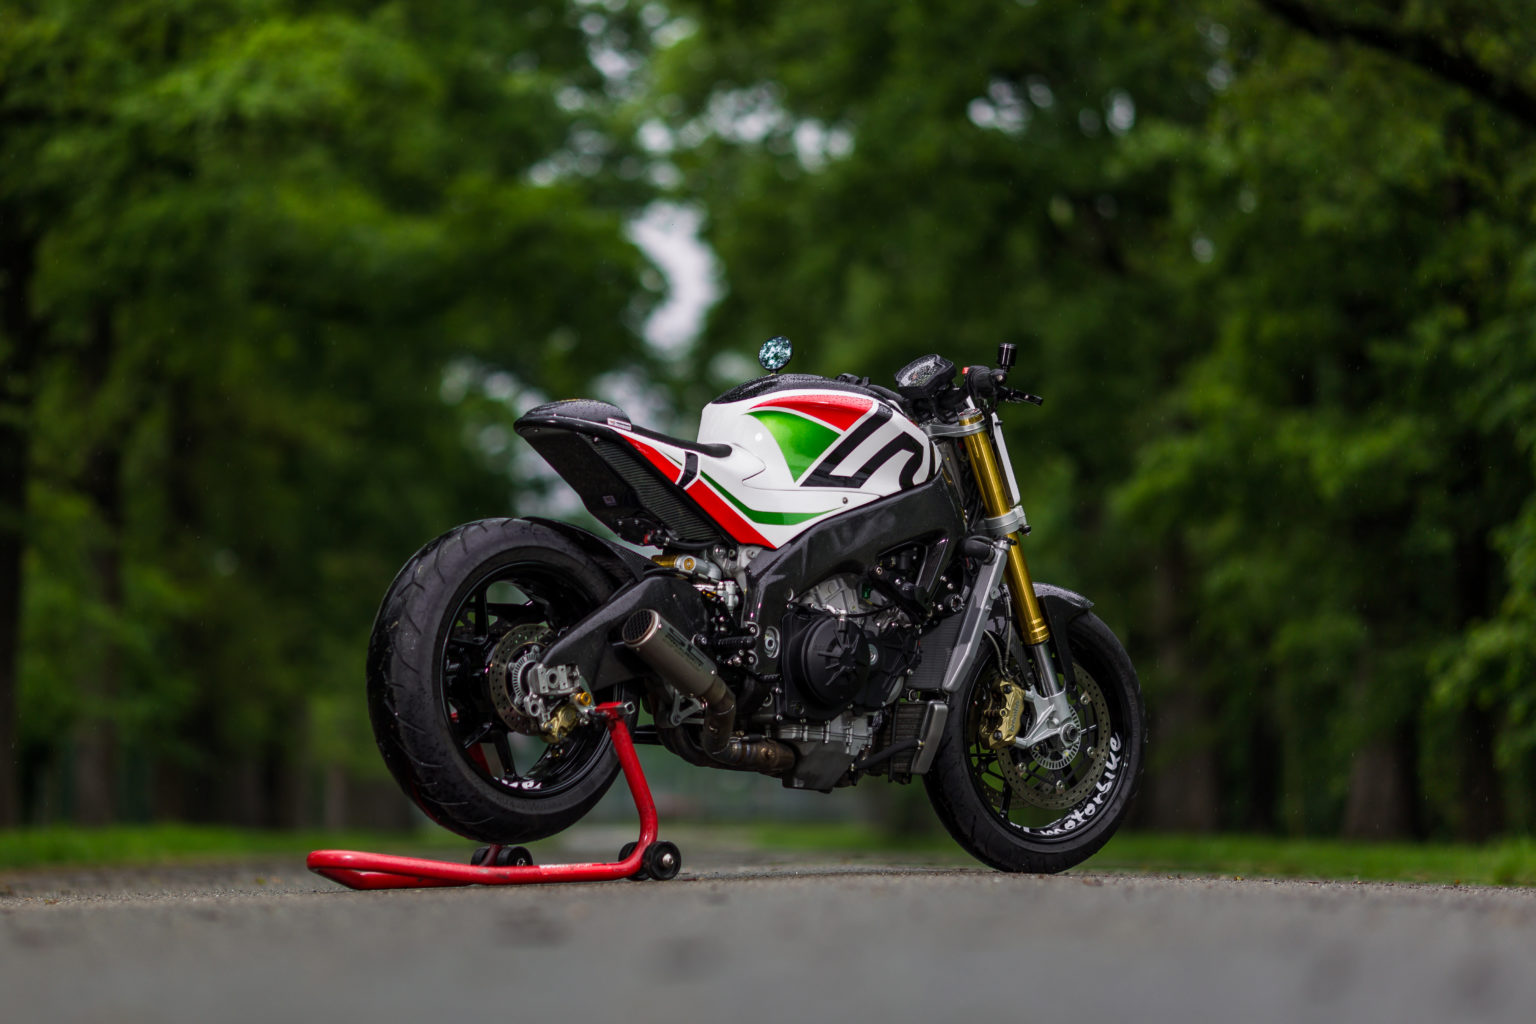 Aprilia Tuono APRC by P.M. Motorbike Garage Customizations